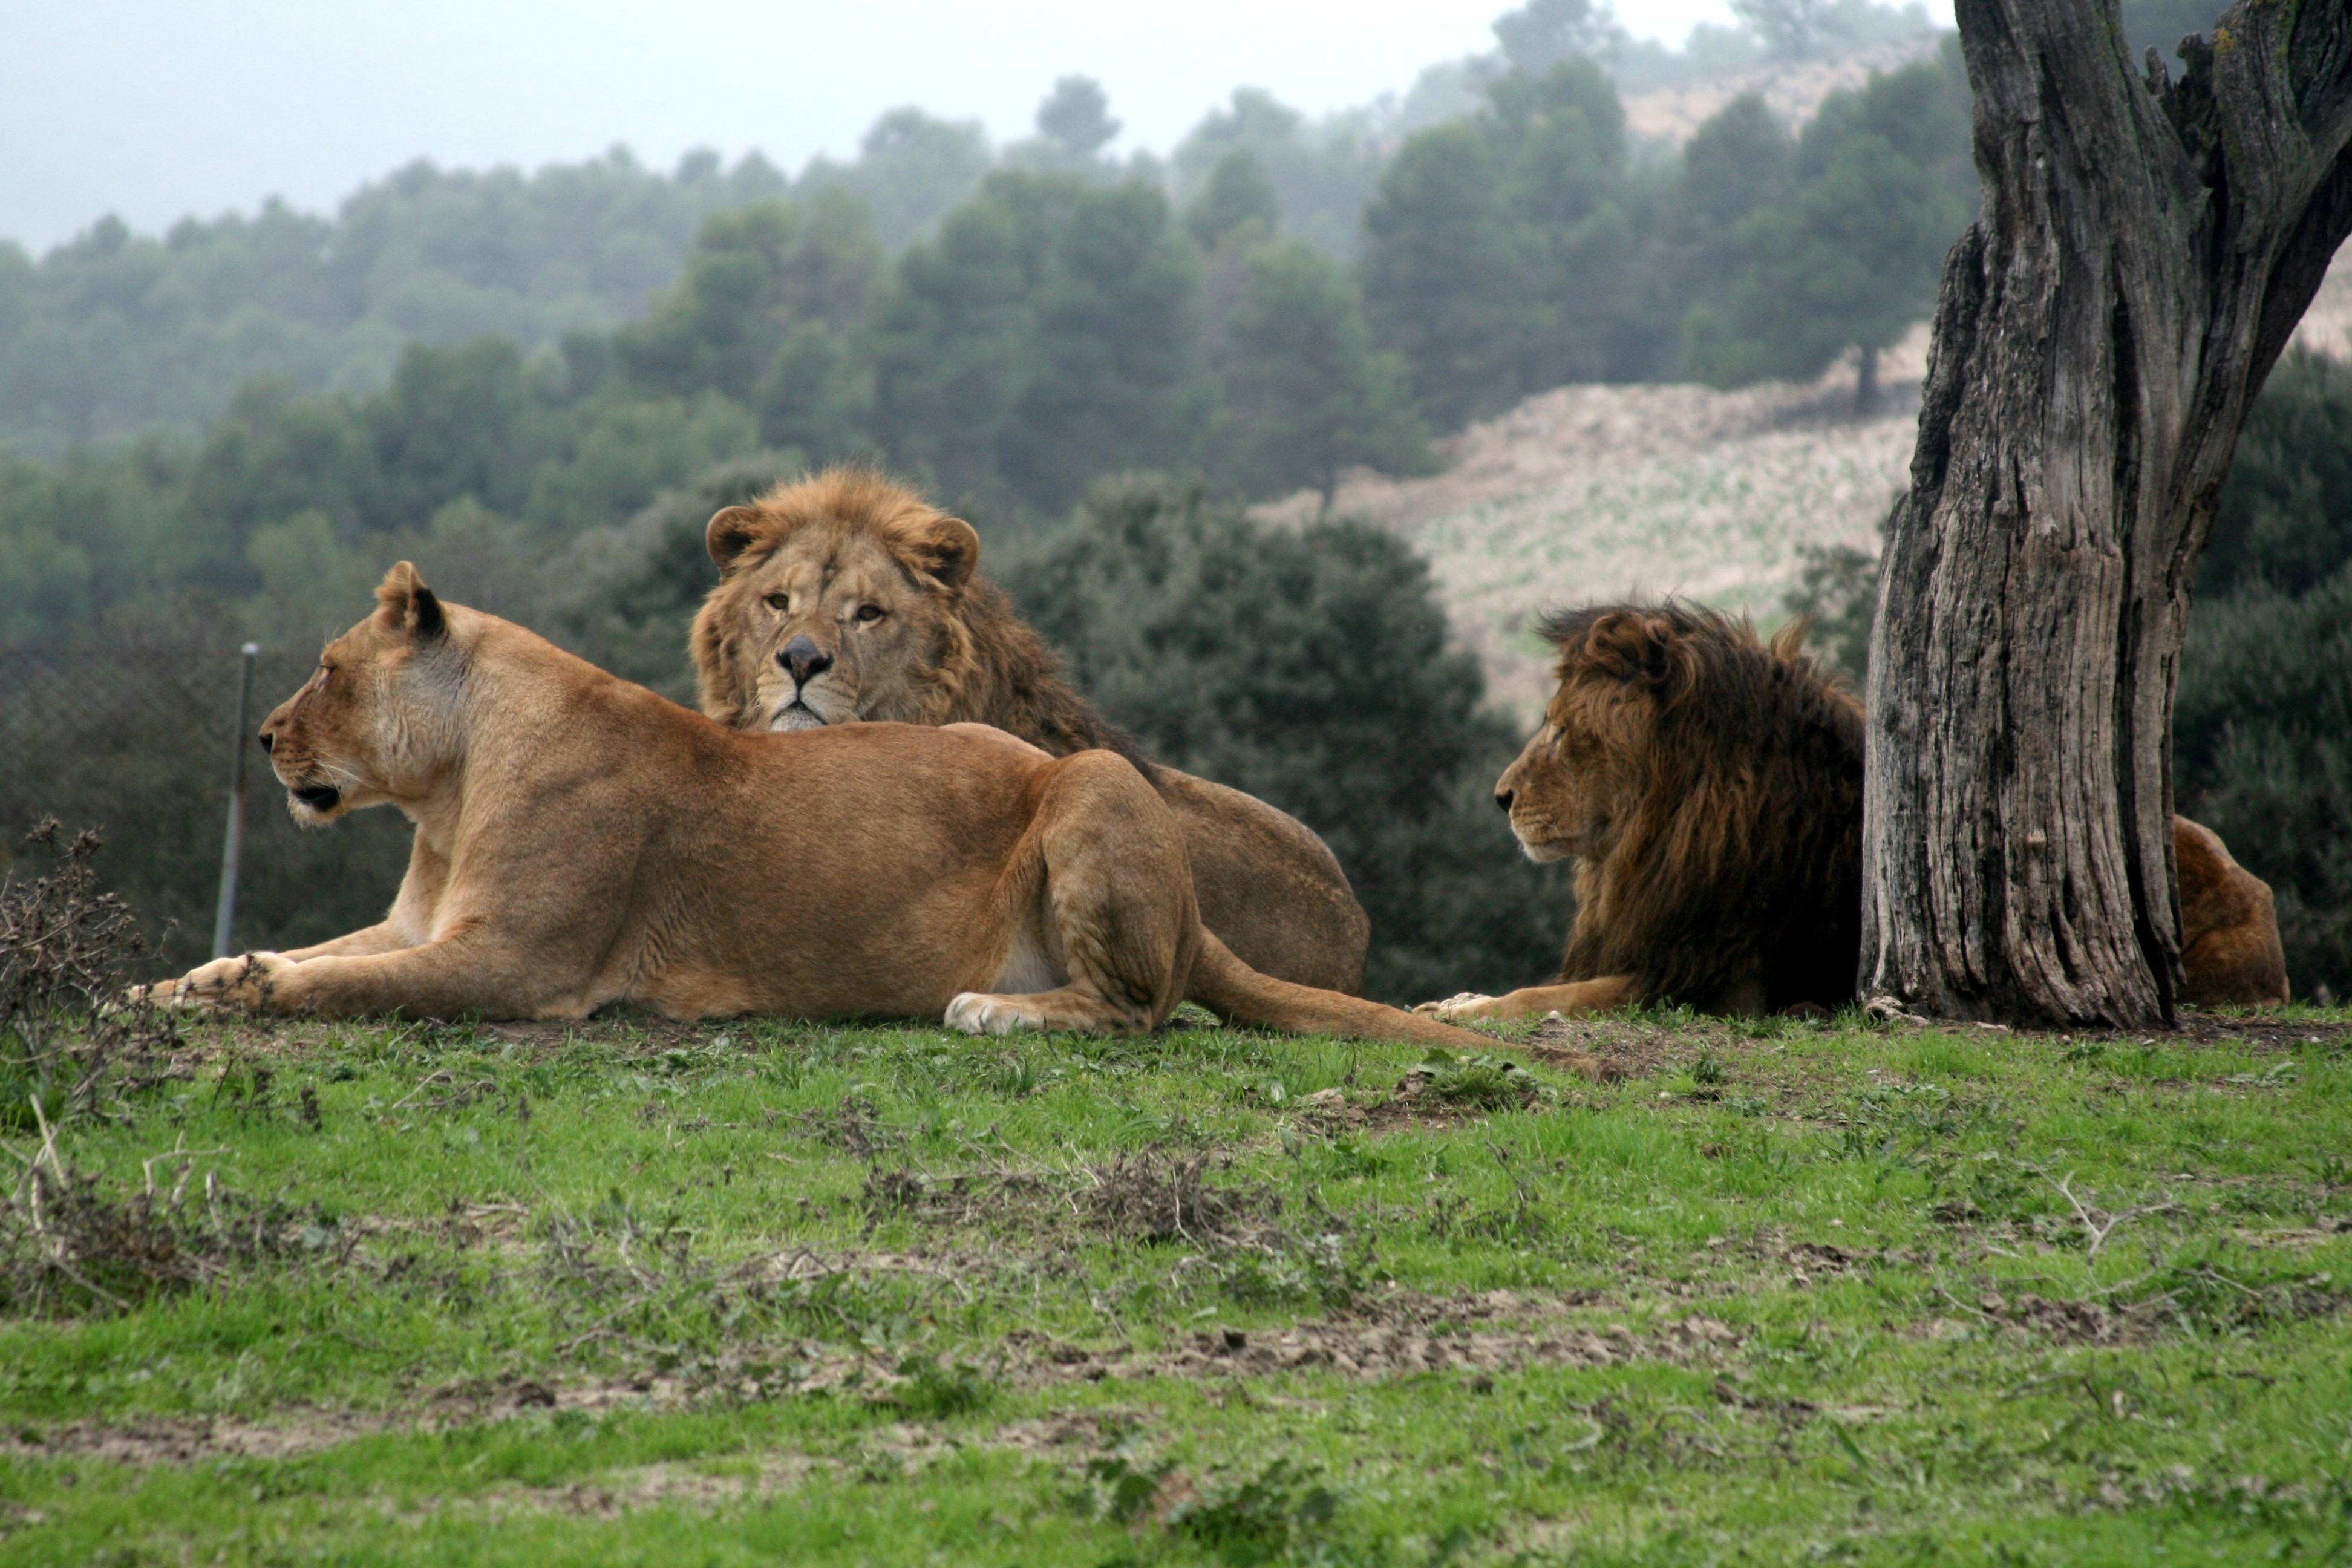 My brother lives in Spain and on one of my visits there we went to a Safari Park where I took this photo.